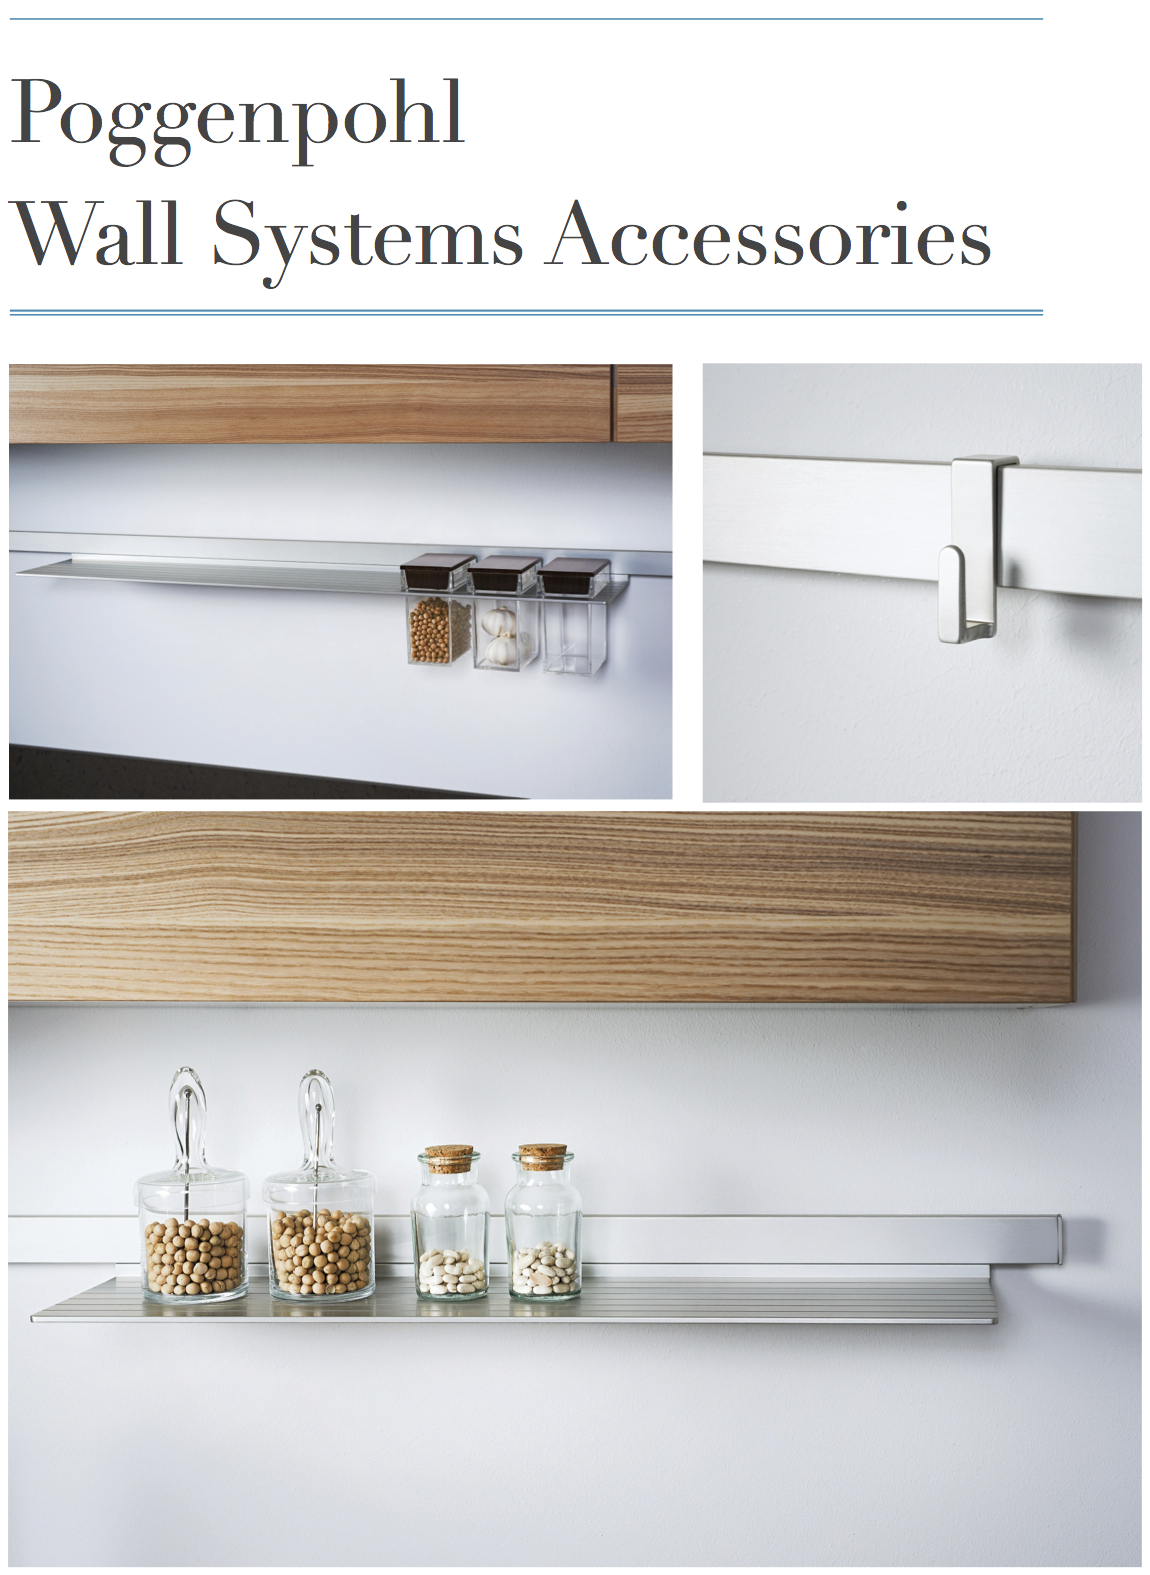 Poggenpohl Wall Systems Accessories